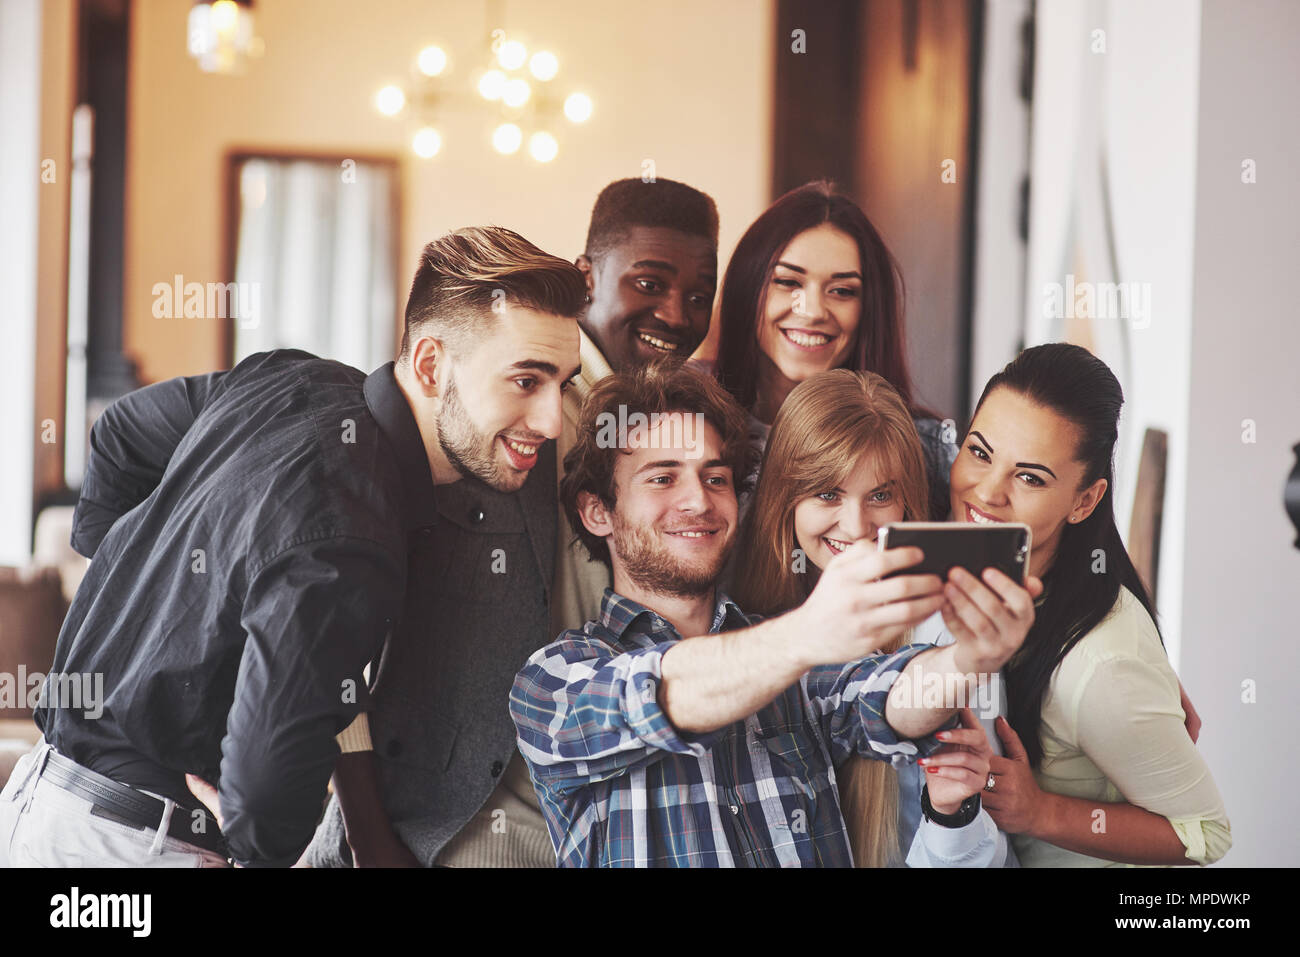 Les gens s'amuser à multiraciale en prenant un café avec selfies téléphone mobile. Groupe de jeunes amis assis au restaurant taking self portrait with smart phone Photo Stock